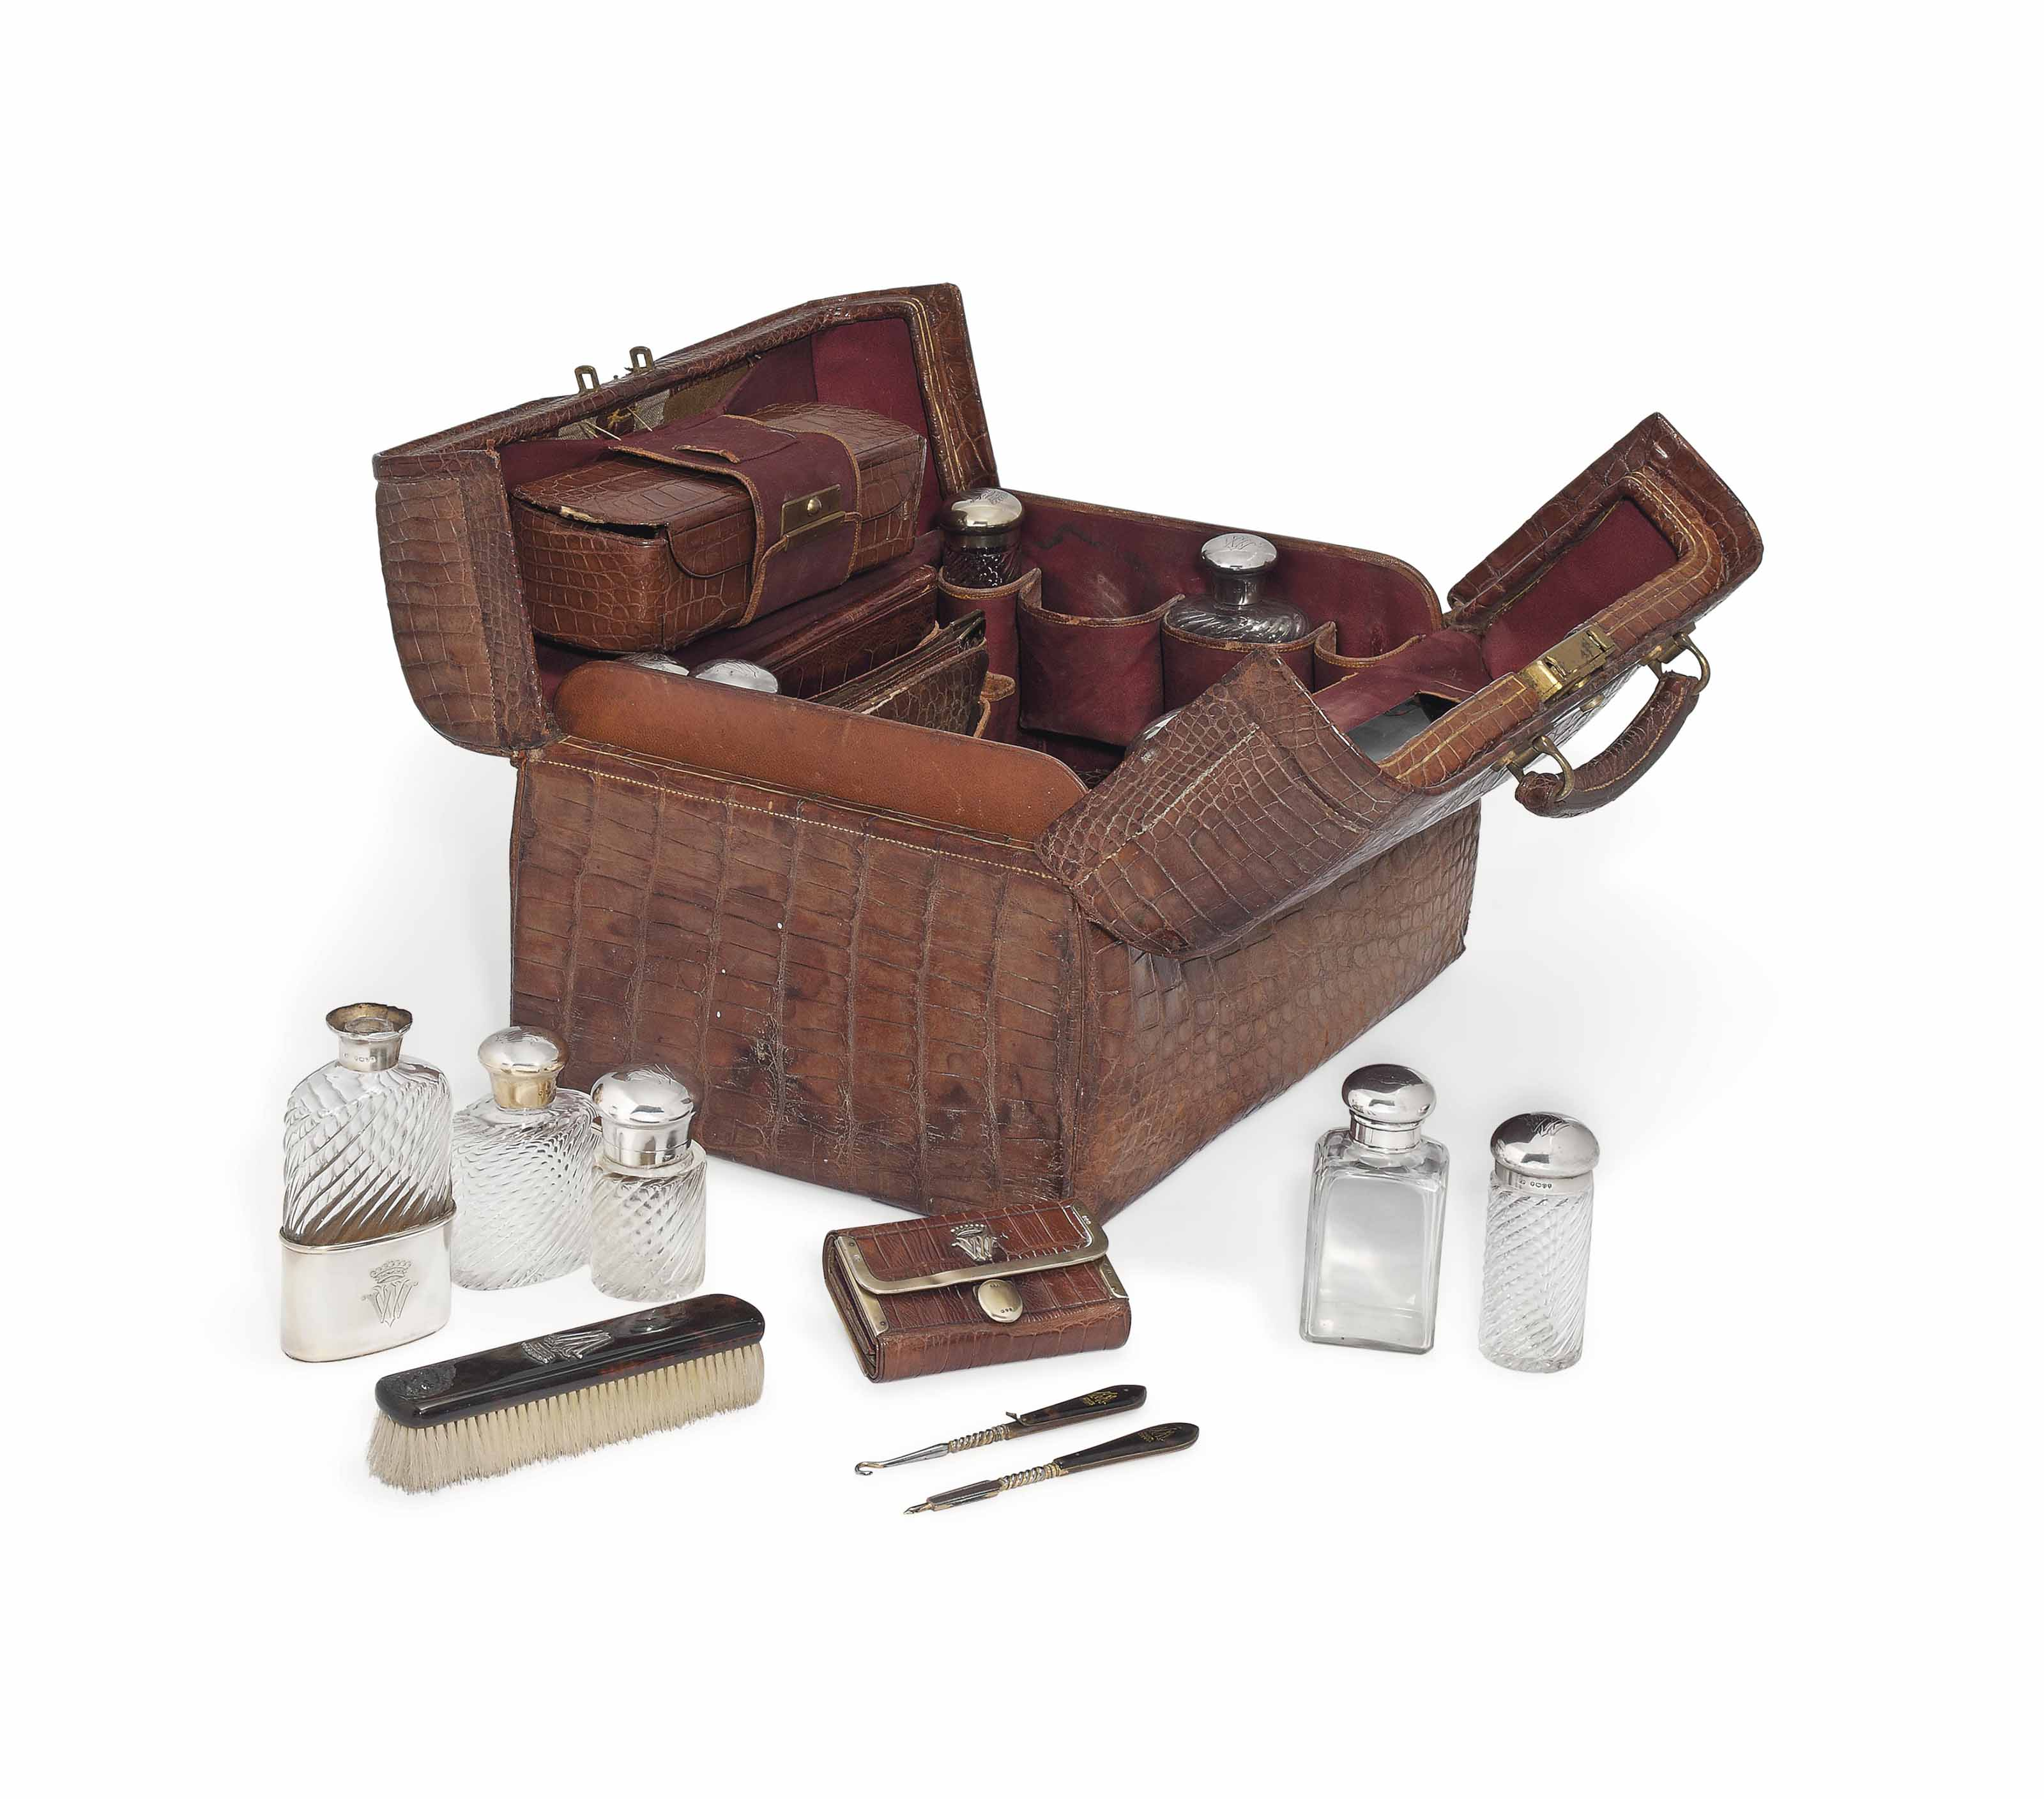 A VICTORIAN GENTLEMAN'S SILVER-GILT AND SILVER-MOUNTED TRAVELLING DRESSING TABLE SET